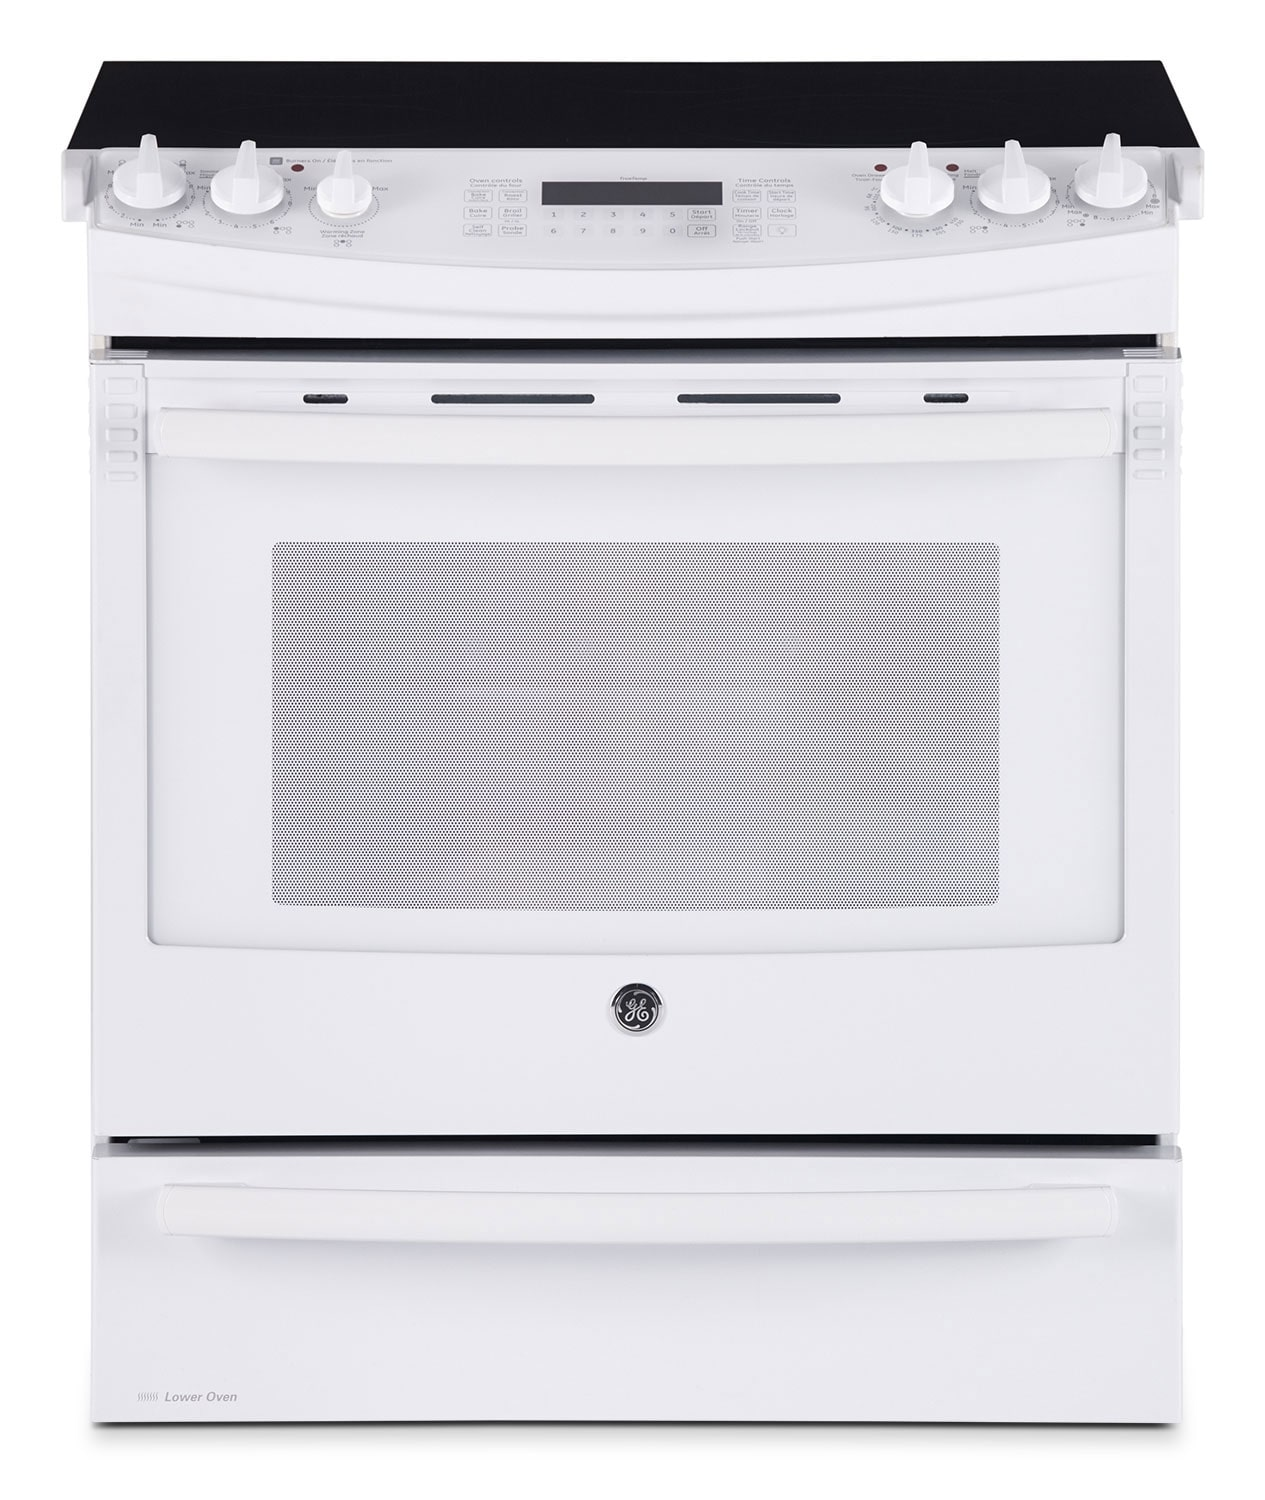 Cooking Products - GE White Slide-In Electric Convection Range (6.6 Cu. Ft.) - PCS940DFWW